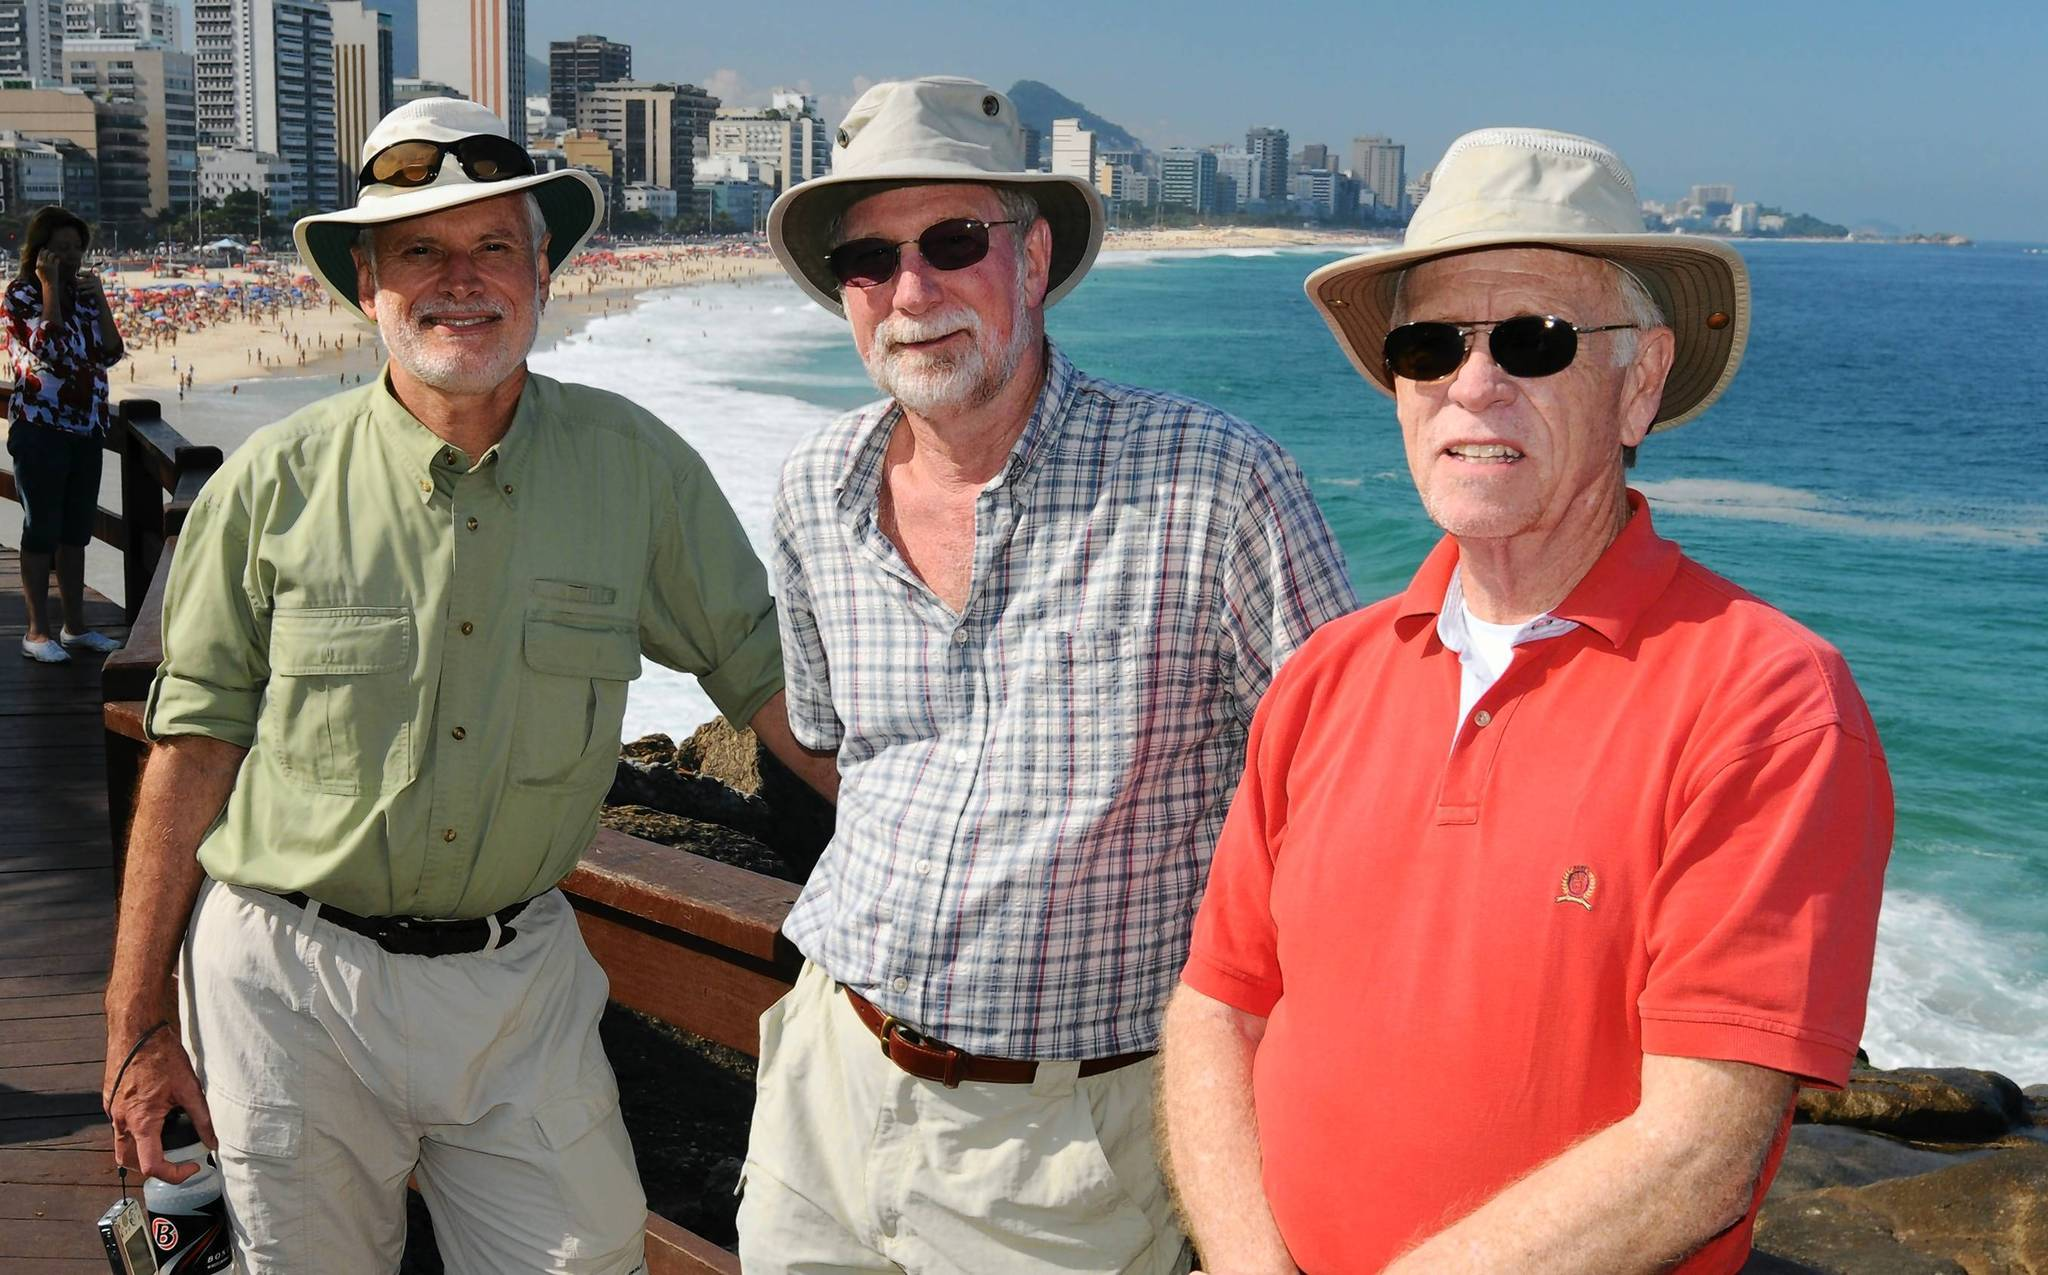 From left, Dr. Kurt Wagner, Dr. Jim Flach and William Kennedy relaxing in Rio de Janeiro, Brazil, after taking part in a medical and dental mission in Brazil.